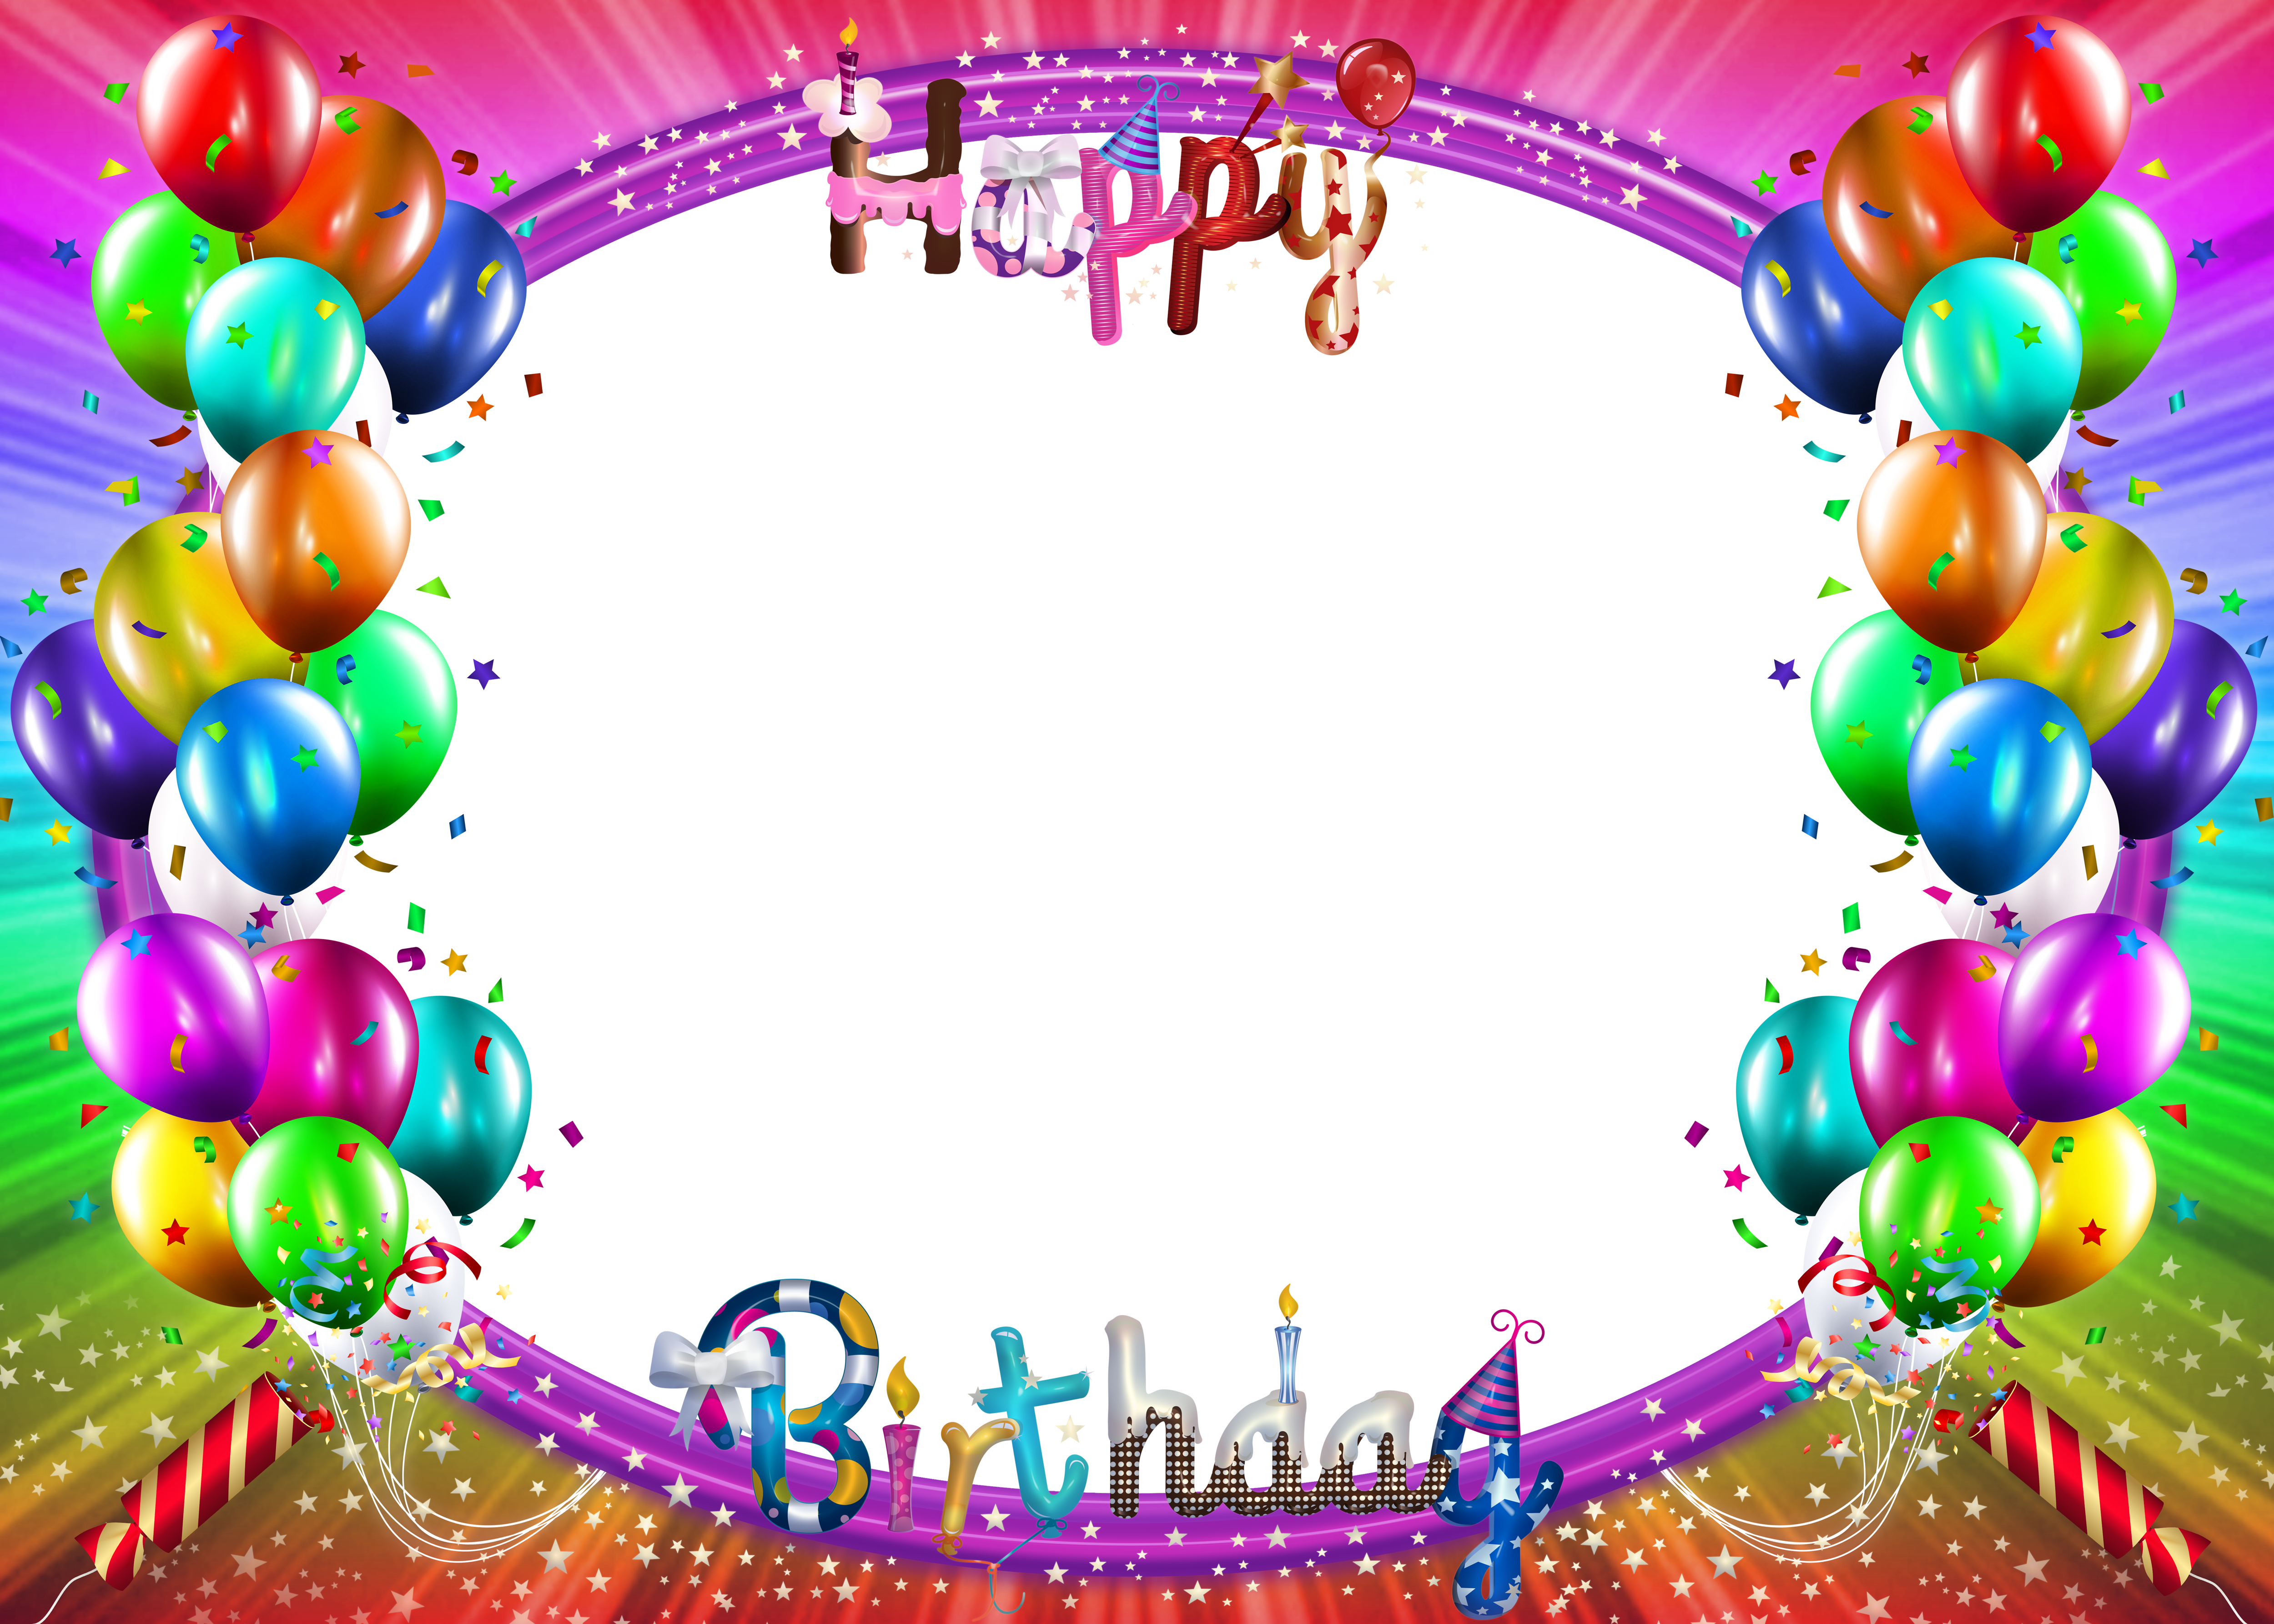 Happy Birthday Colorful Png Frame With Images Birthday Photo